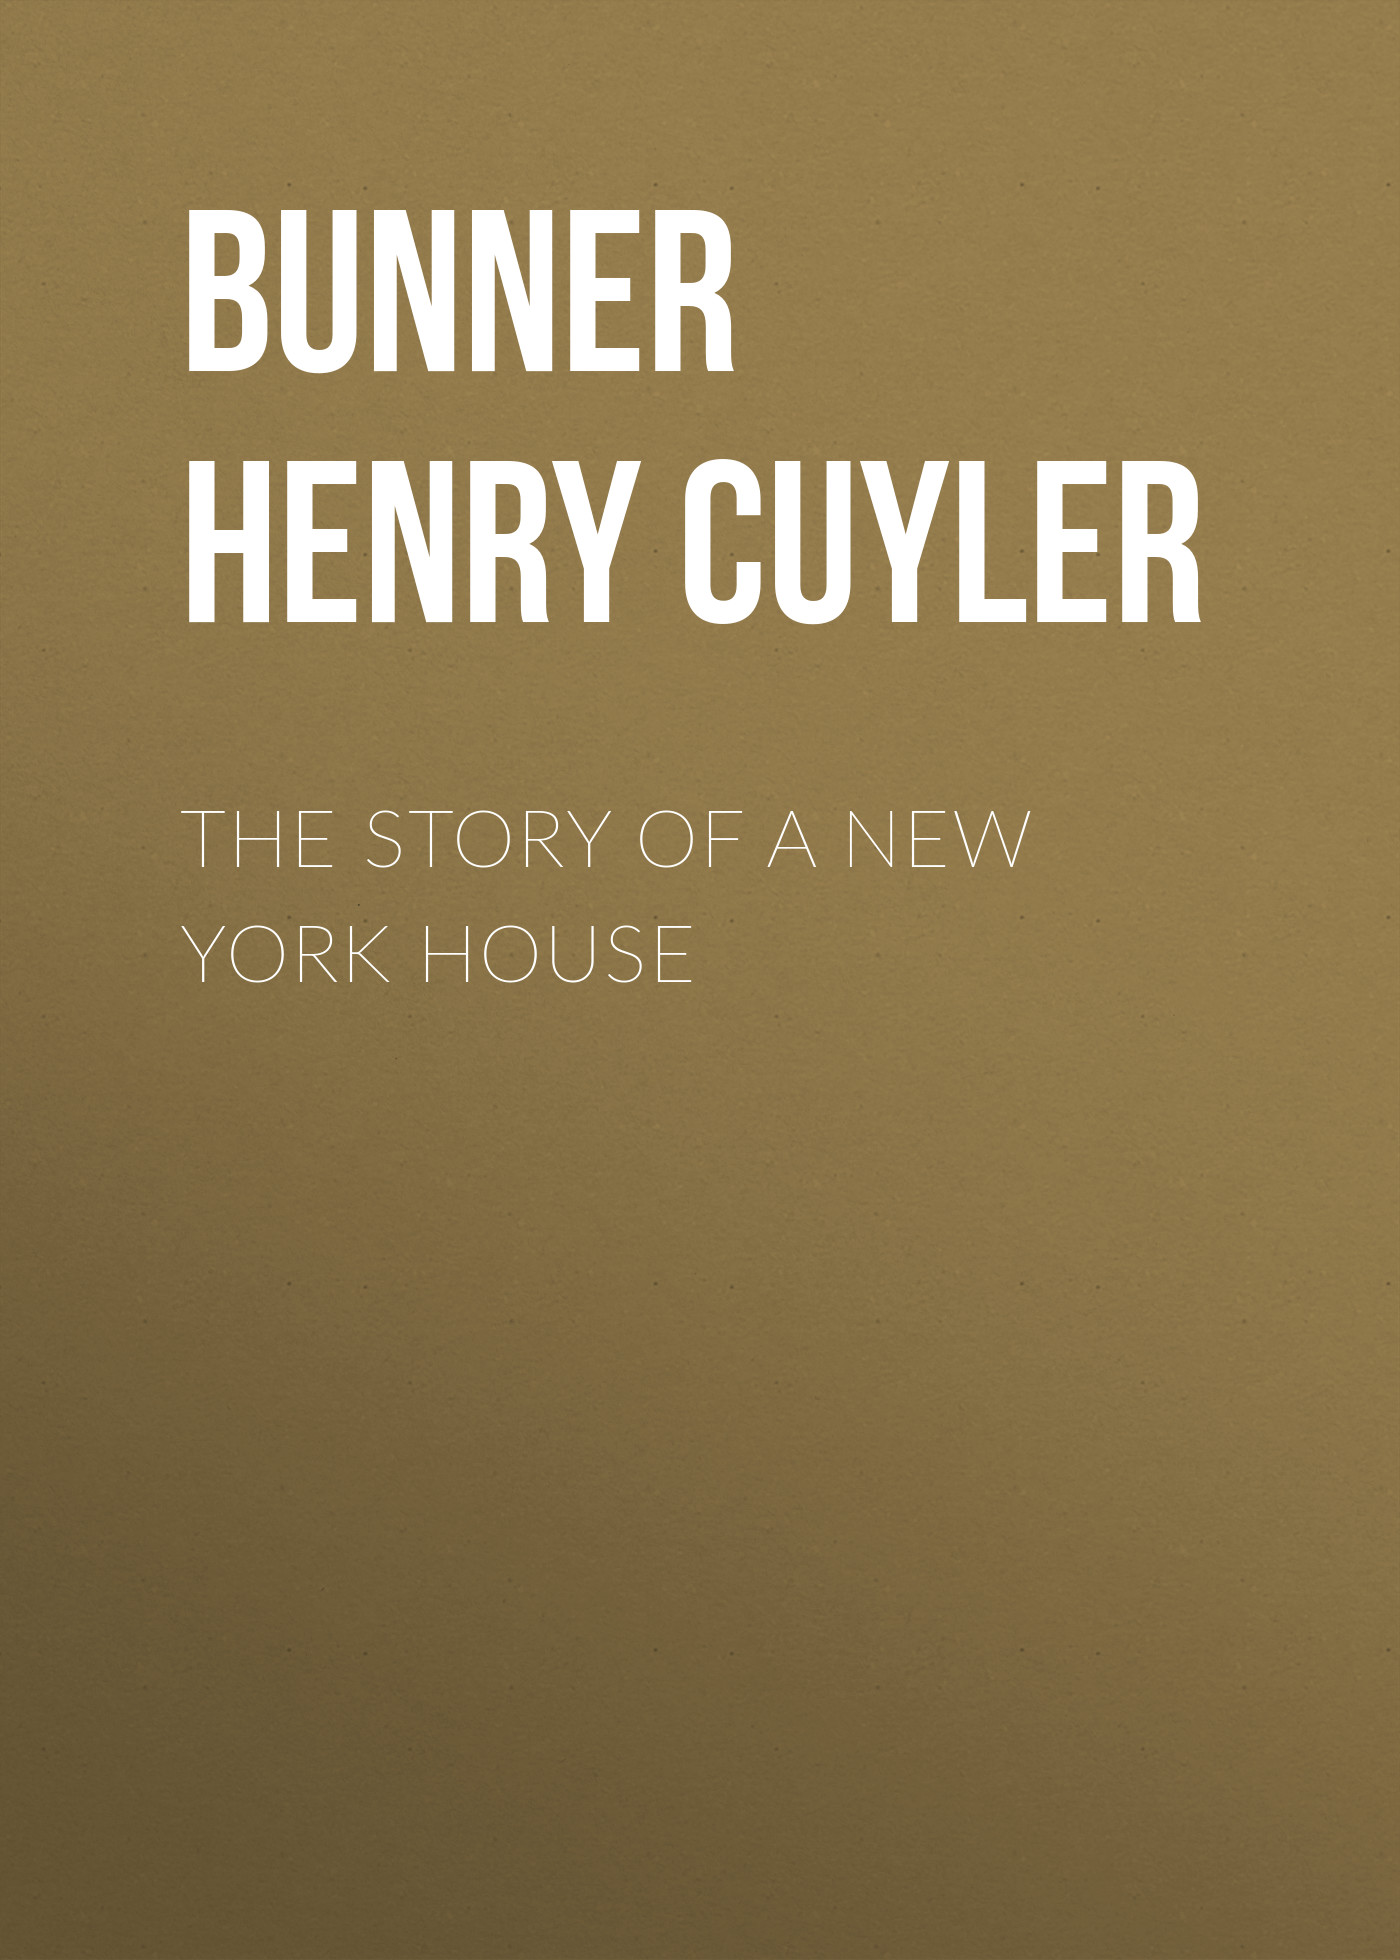 Bunner Henry Cuyler The Story of a New York House недорого